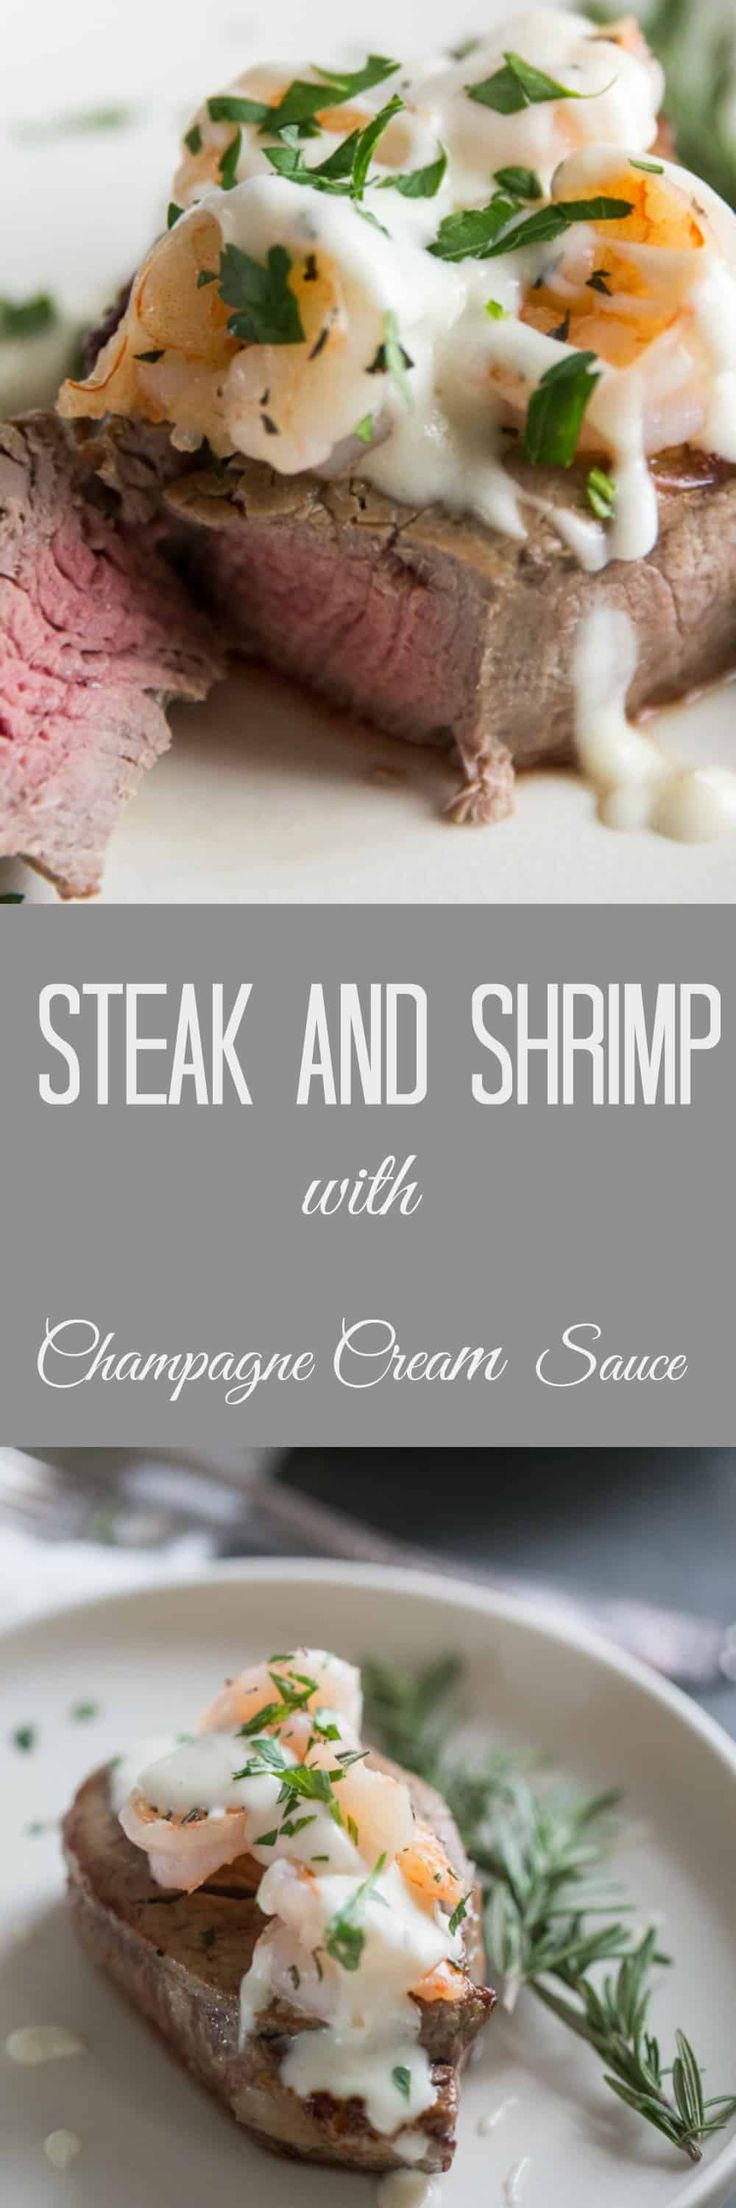 """Nothing is more romantic than a homemade meal cooked with love. Steak and shrimp are served with an elegant and luxurious champagne cream sauce for sexy dinner that screams """"I love you"""". via @Lemonsforlulu"""